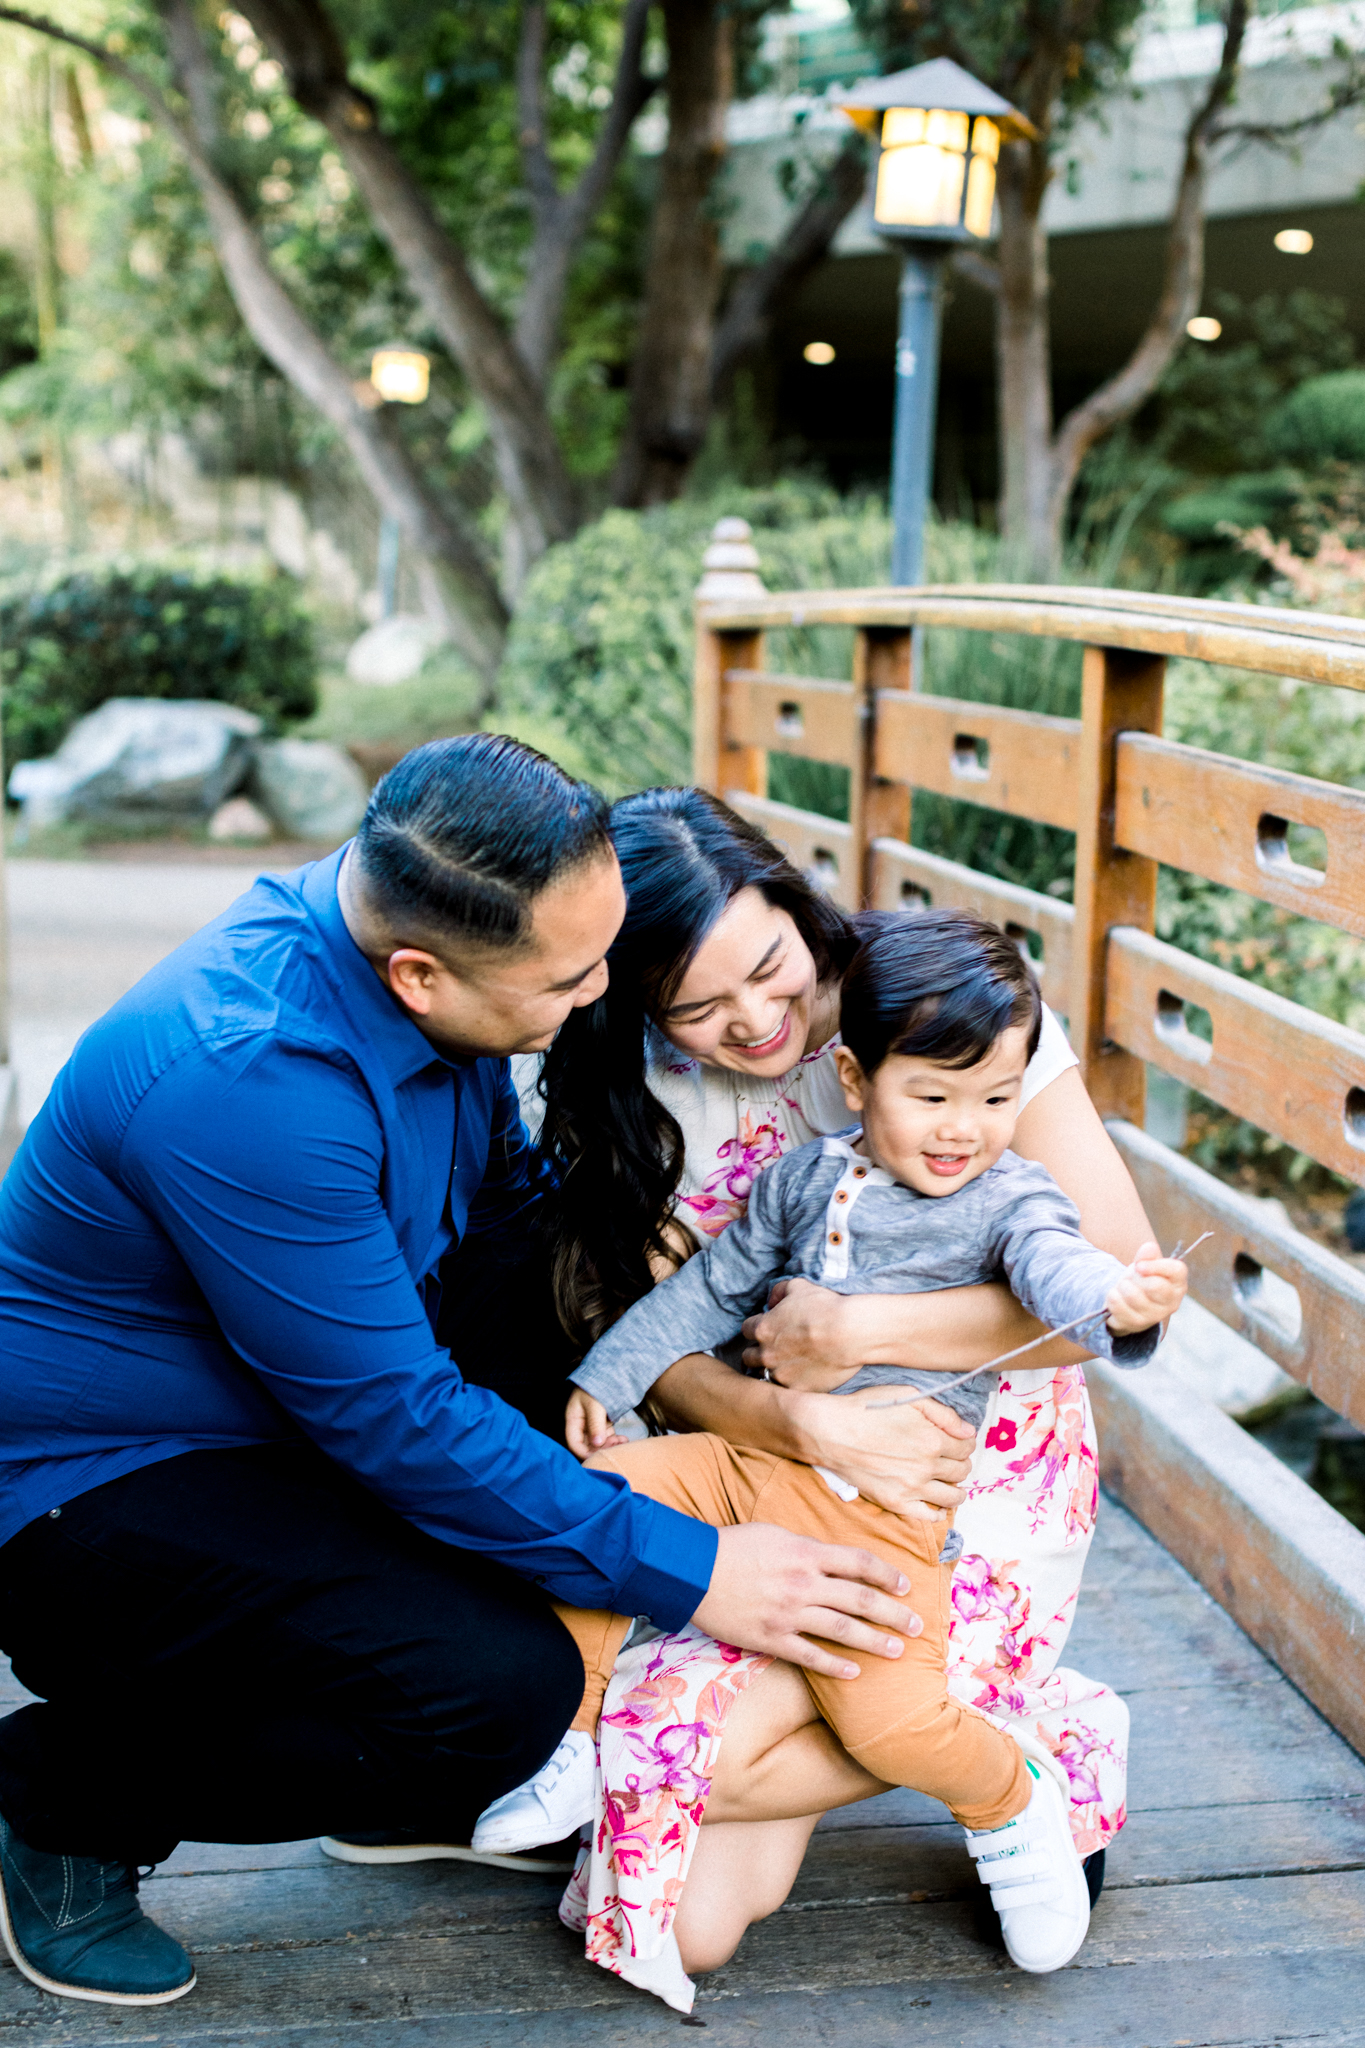 The Gomez family smiling and laughing during their family photography session in Pomona.